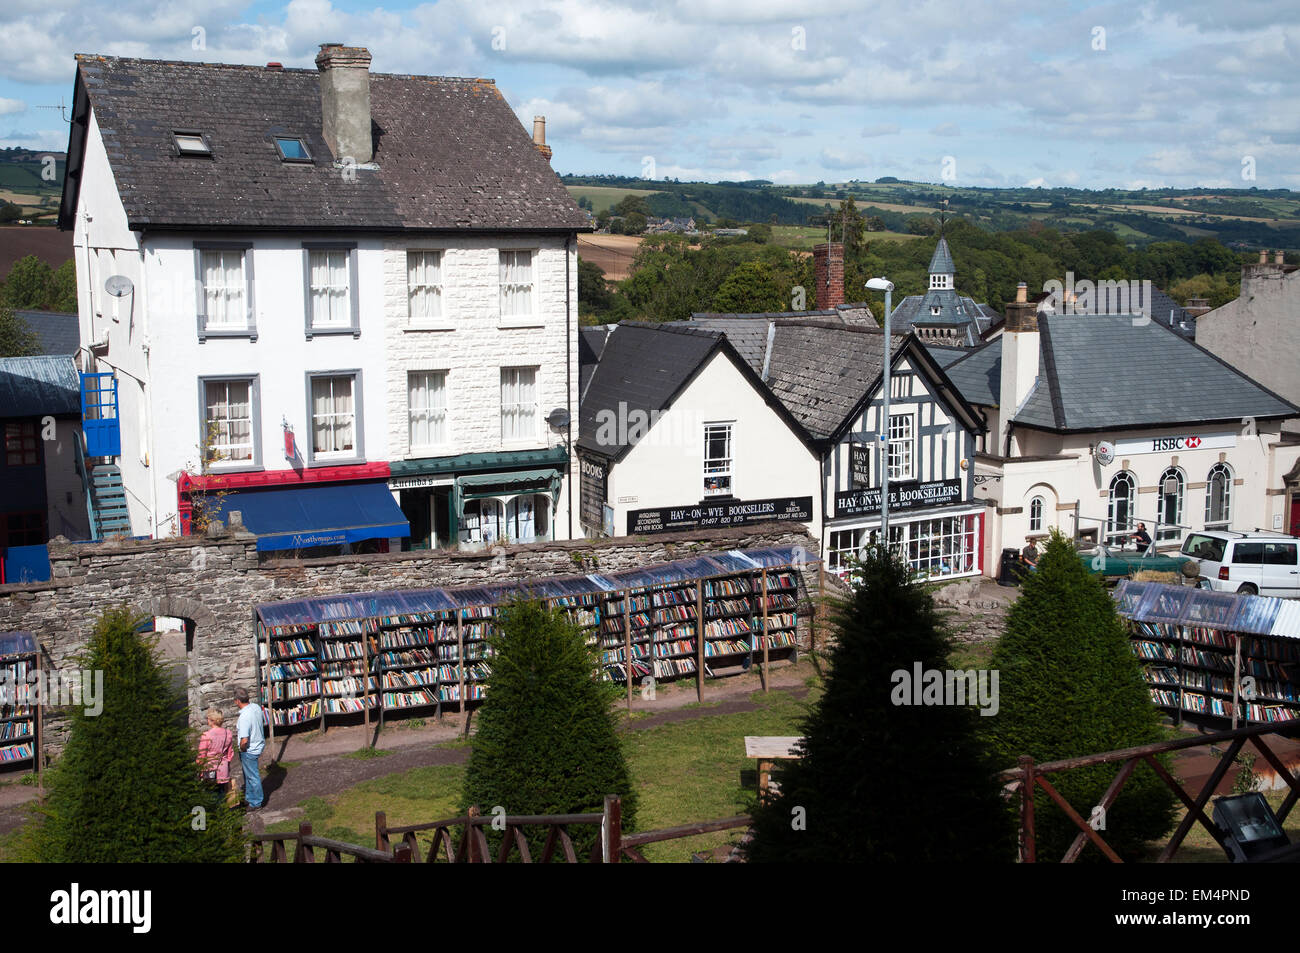 Second hand books in the gardens of  the Castle of Hay-on-Wye, Wales, UK Europe - Stock Image